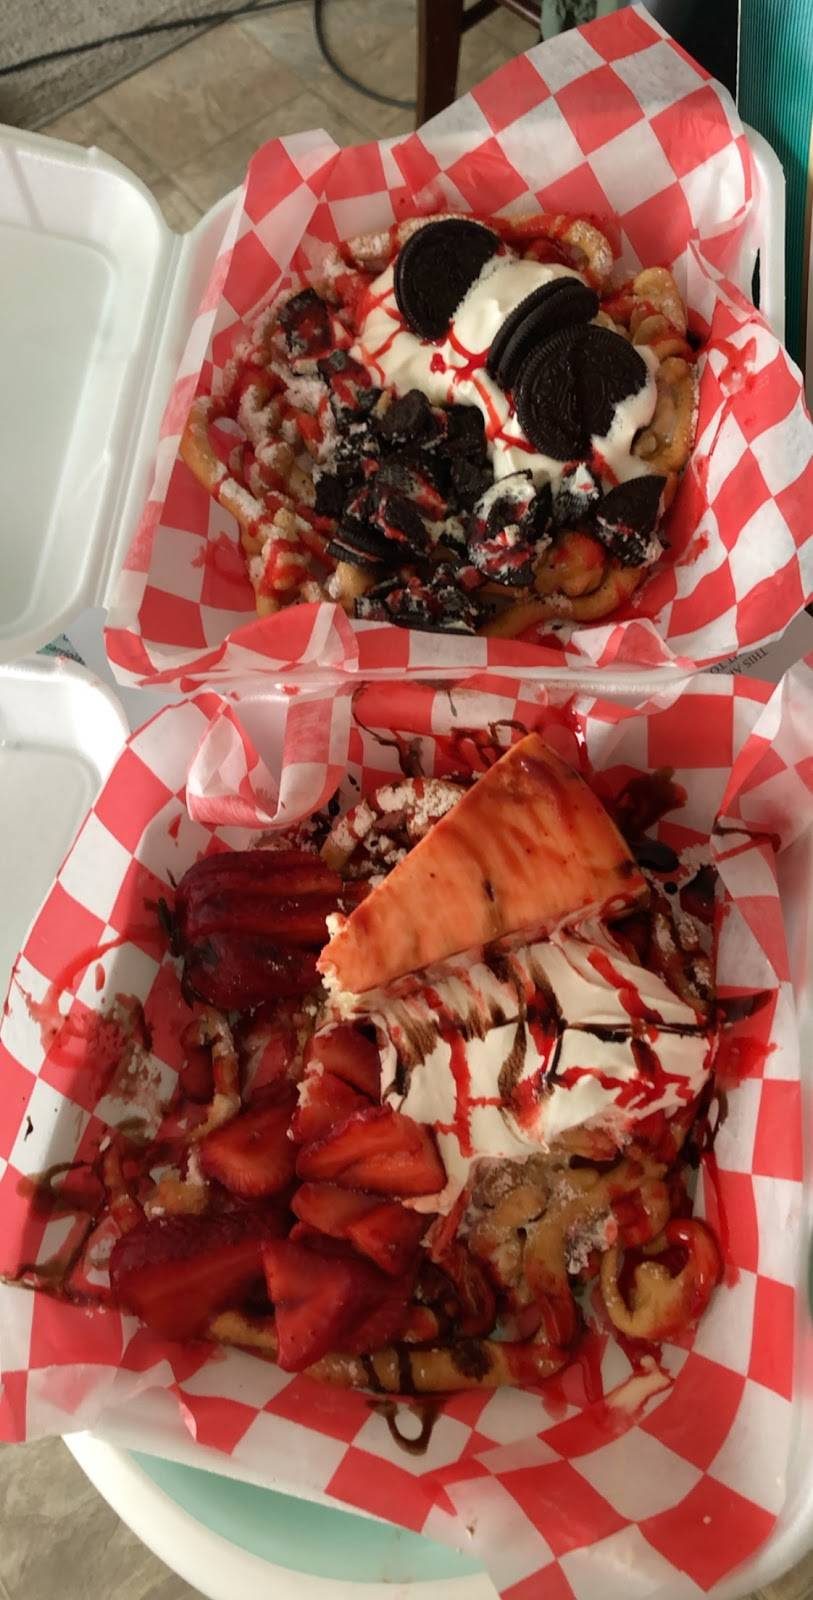 Nadines Funnel Cakes   restaurant   4331 The Plaza, Charlotte, NC 28205, USA   7042587248 OR +1 704-258-7248